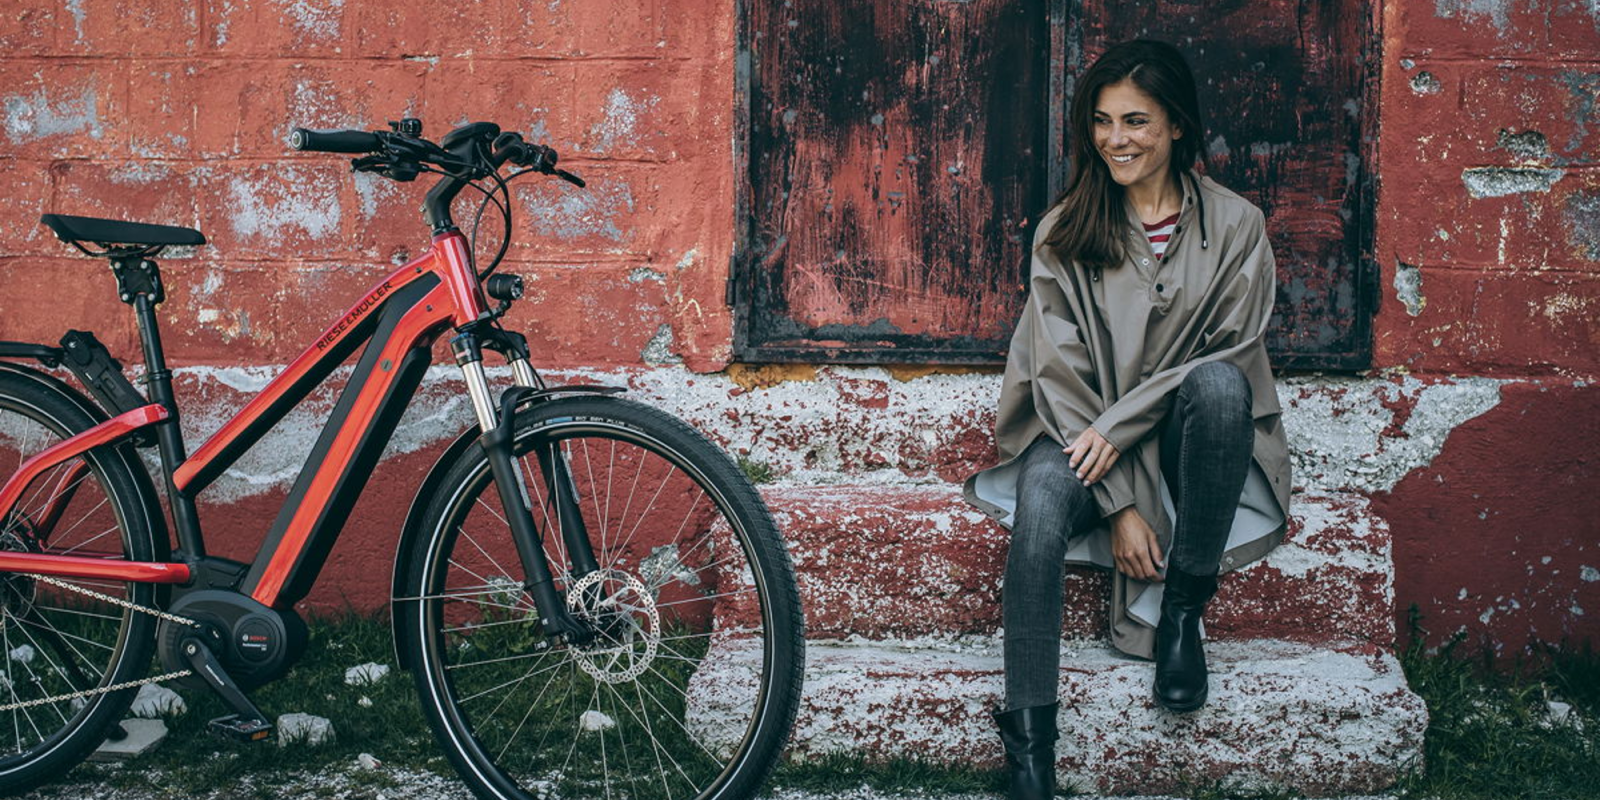 Riese & Müller unveils two new eBikes touting top speeds of 28 mph and 100 mile ranges